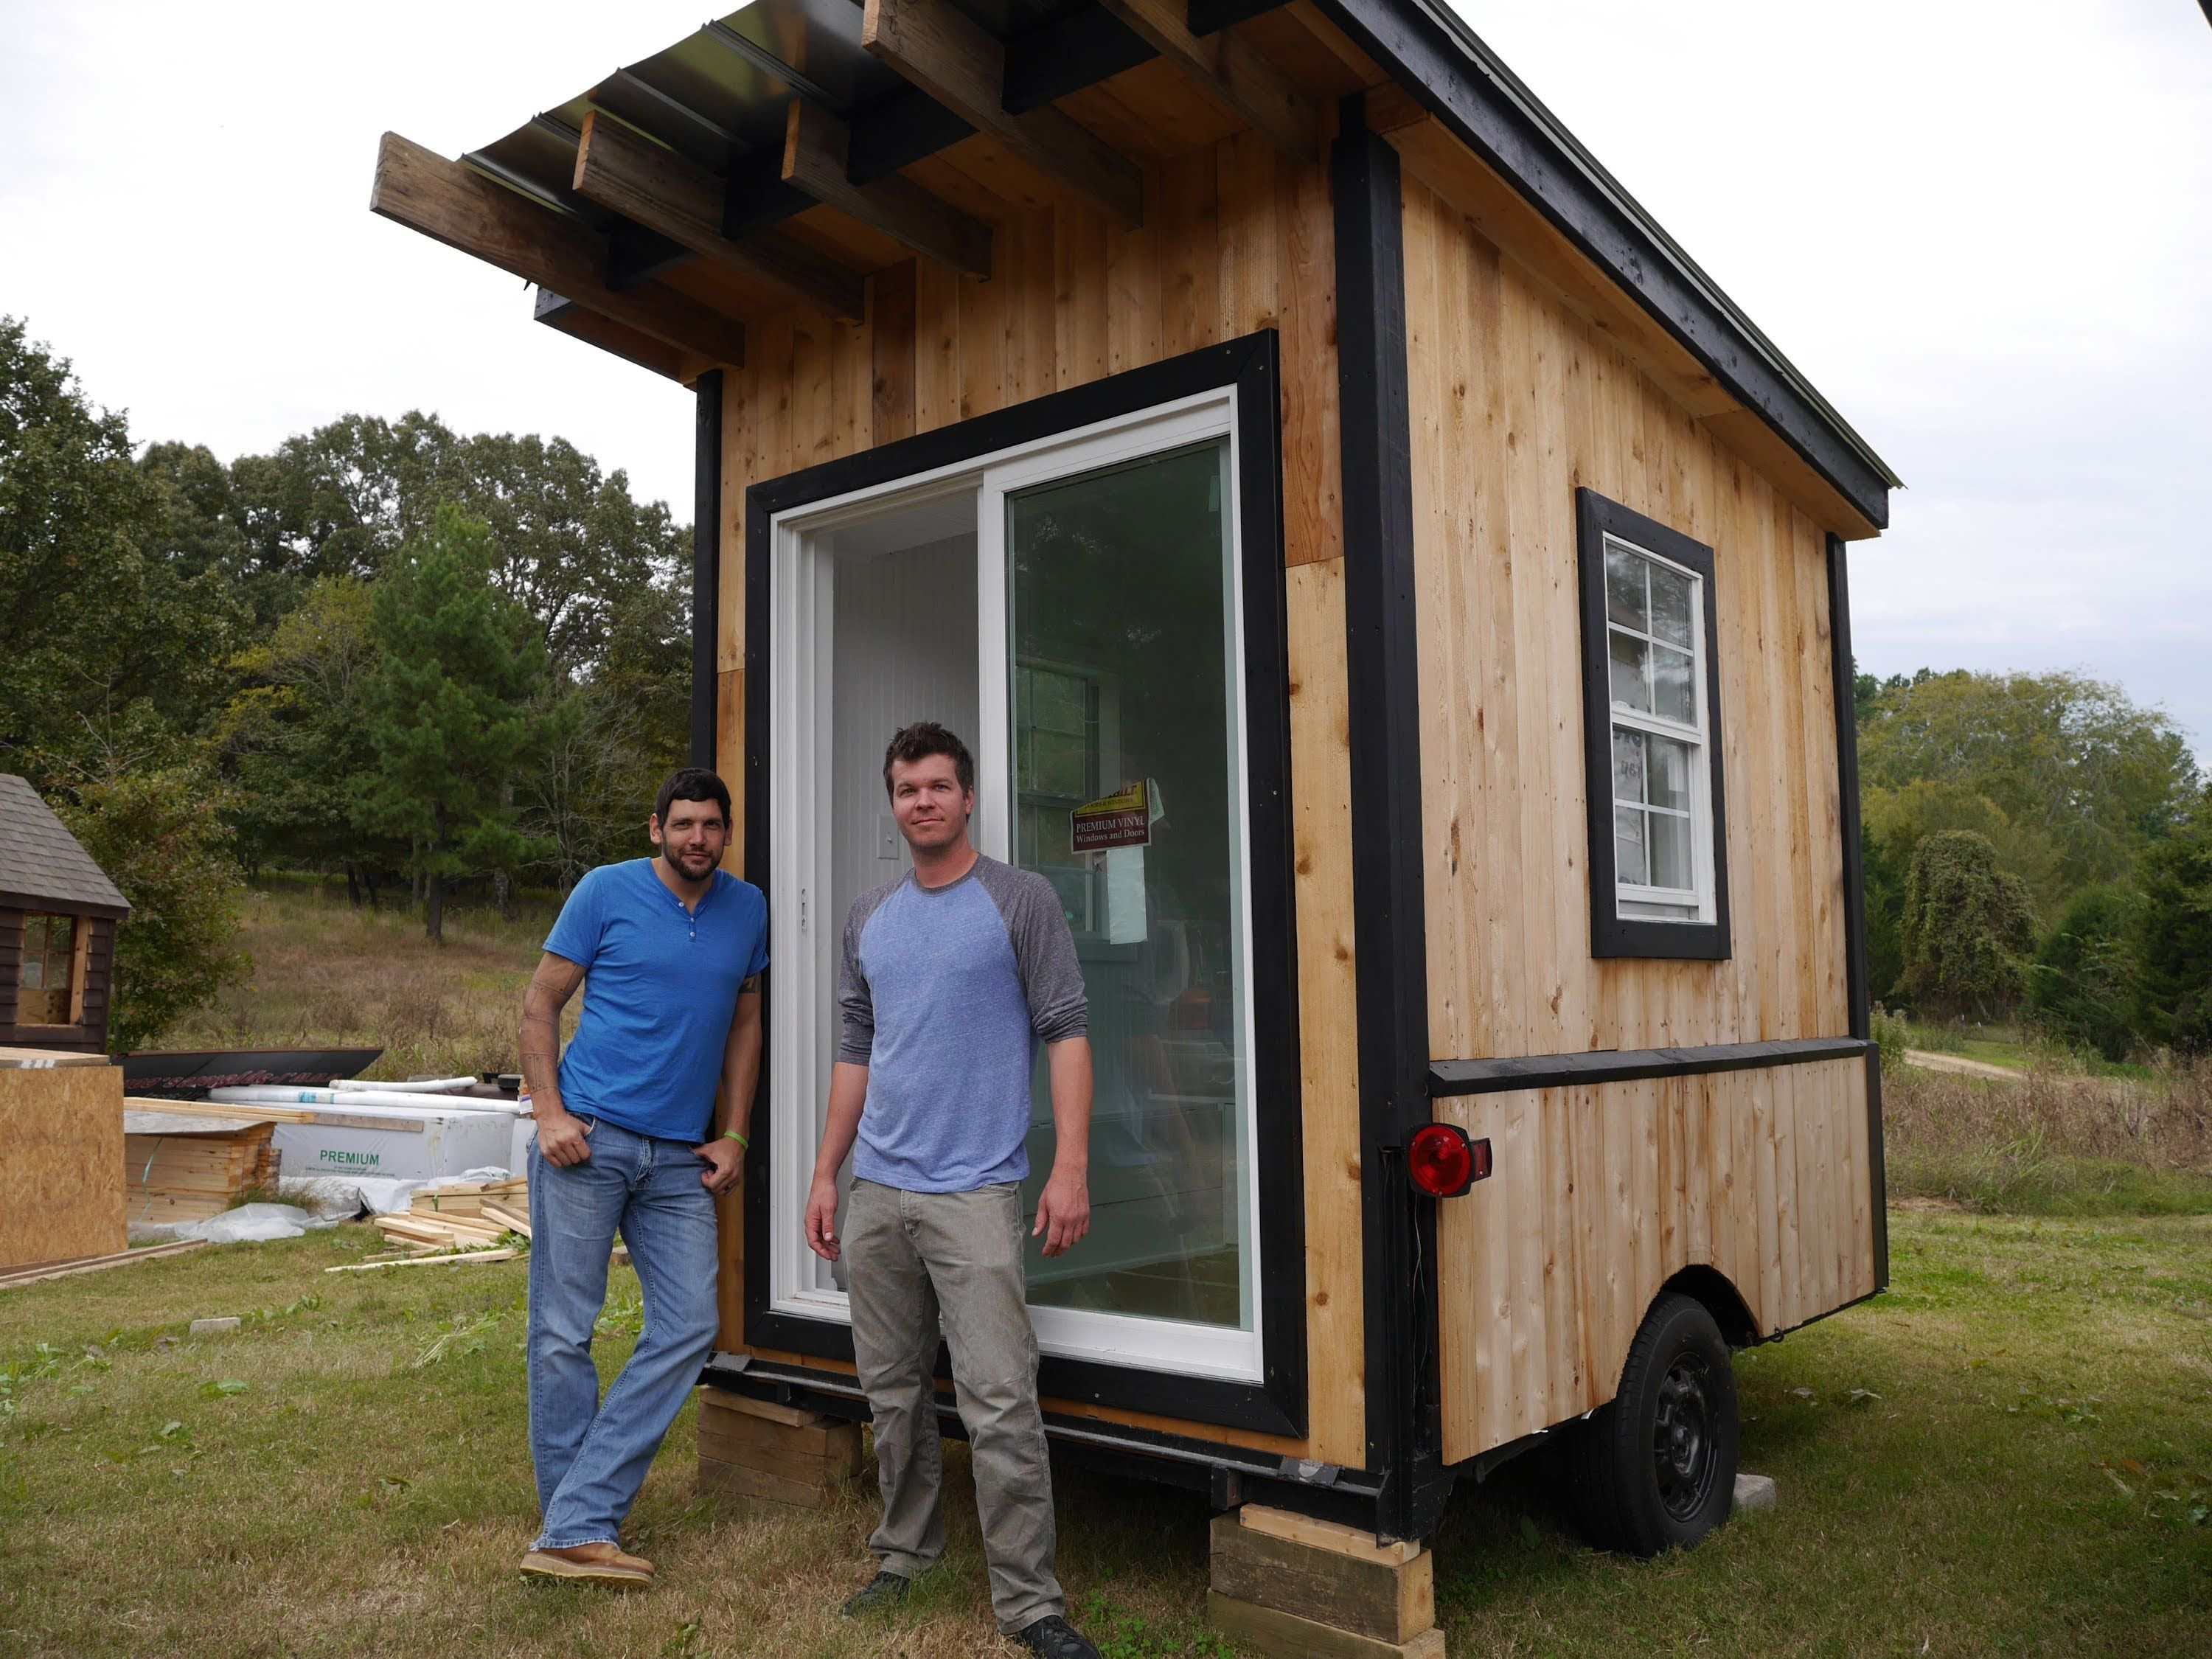 A Tiny Tailgating House Cabin On Wheels A 60 Square Foot Diy